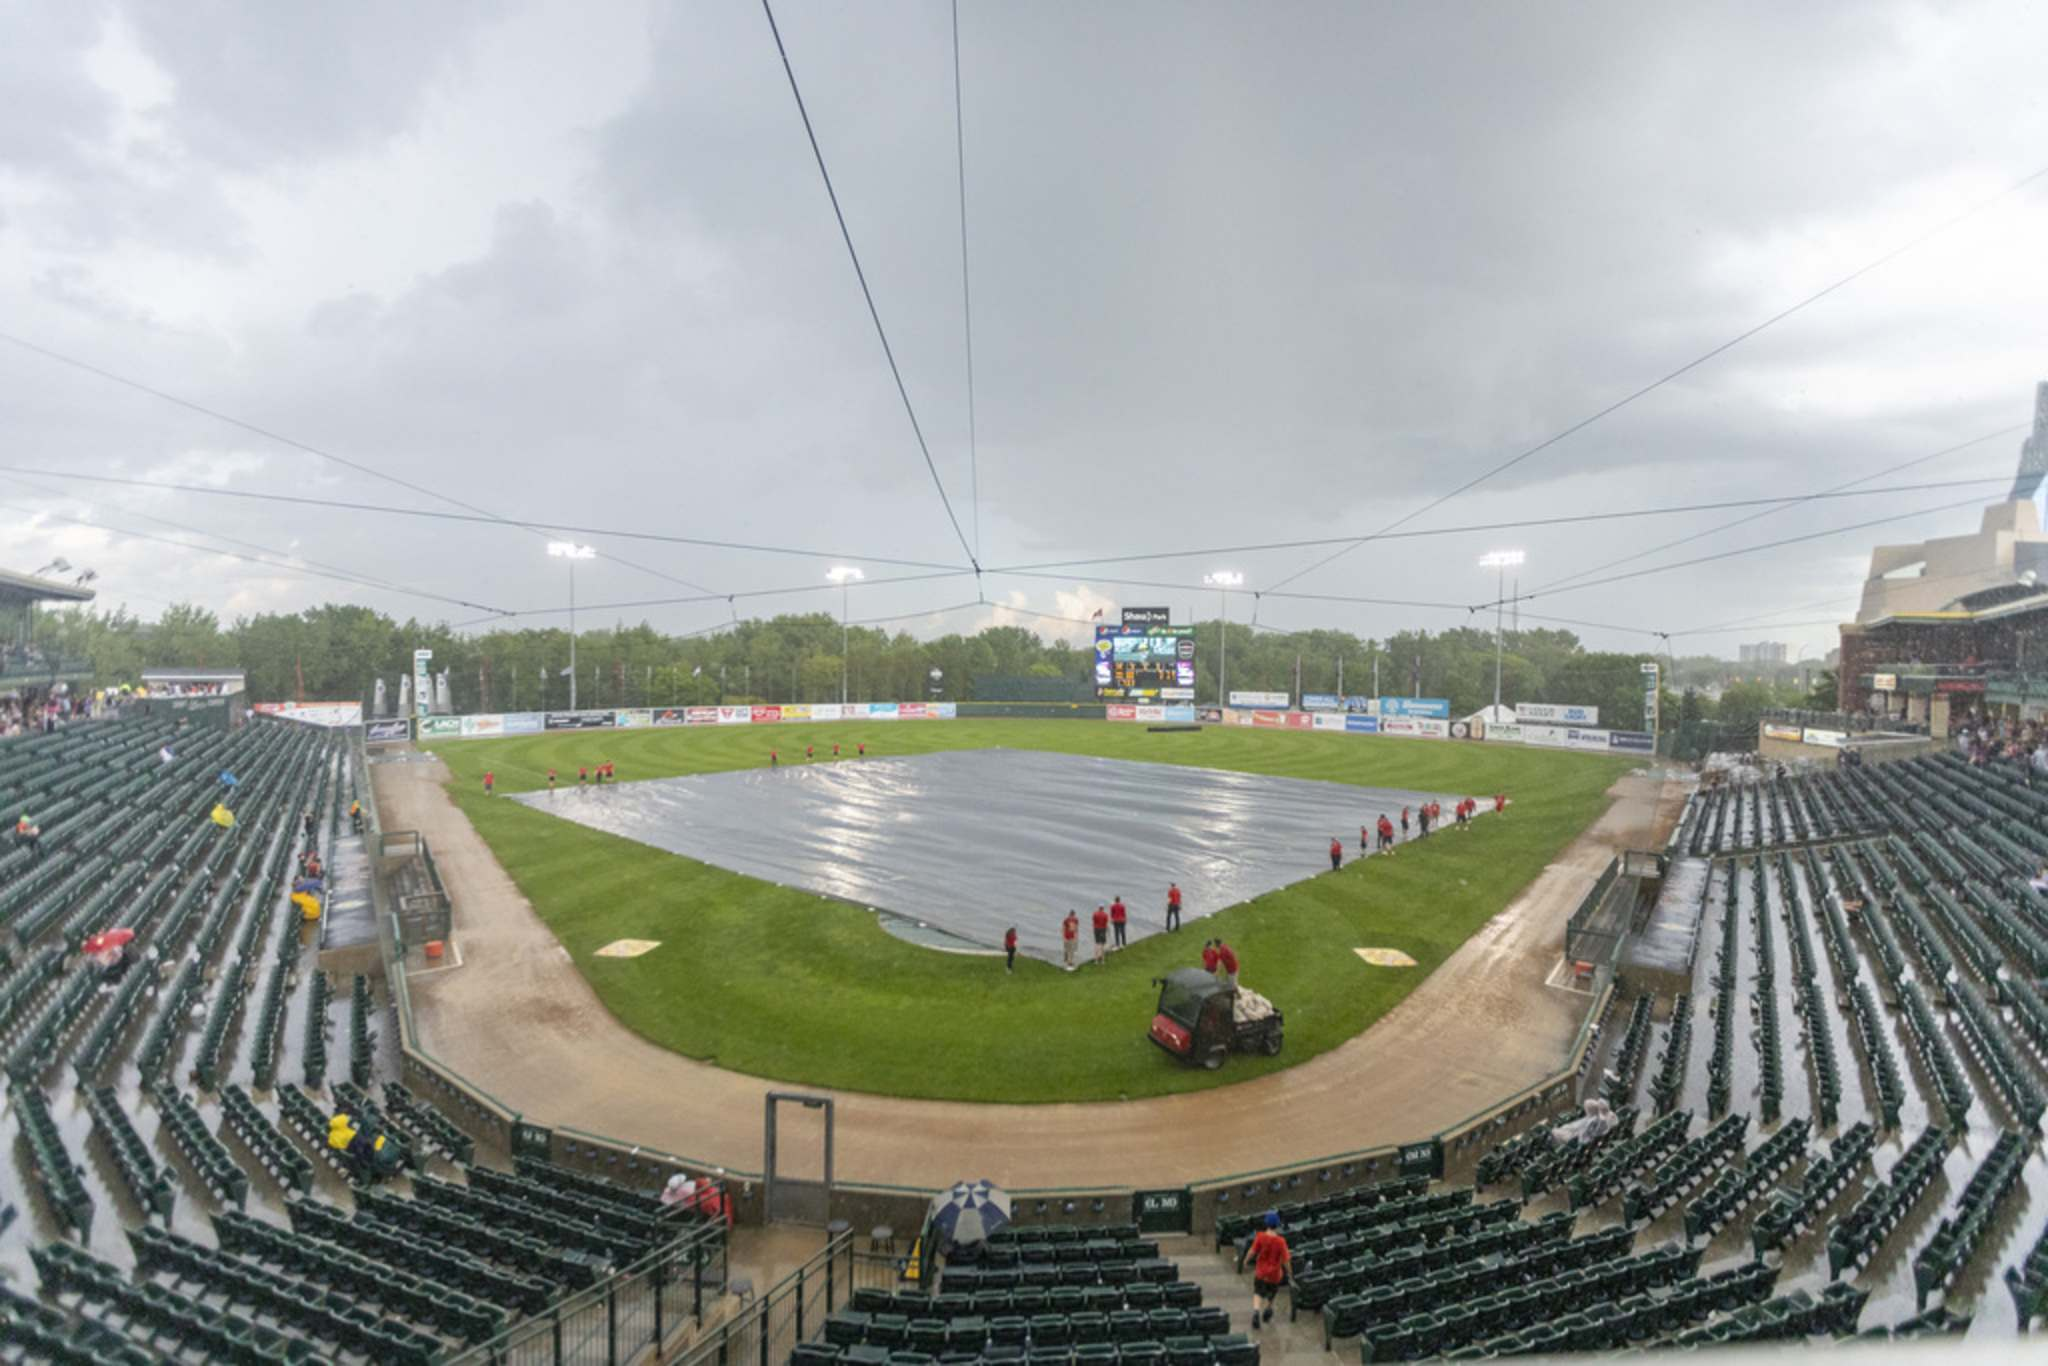 SASHA SEFTER / WINNIPEG FREE PRESS FILES</p><p>The city is considering a new proposal that would replace the Goldeyes' current $1-per-year lease of Shaw Park and charge the team an annual rent of between $75,000 and $95,000 per season over the next 15 years.</p>